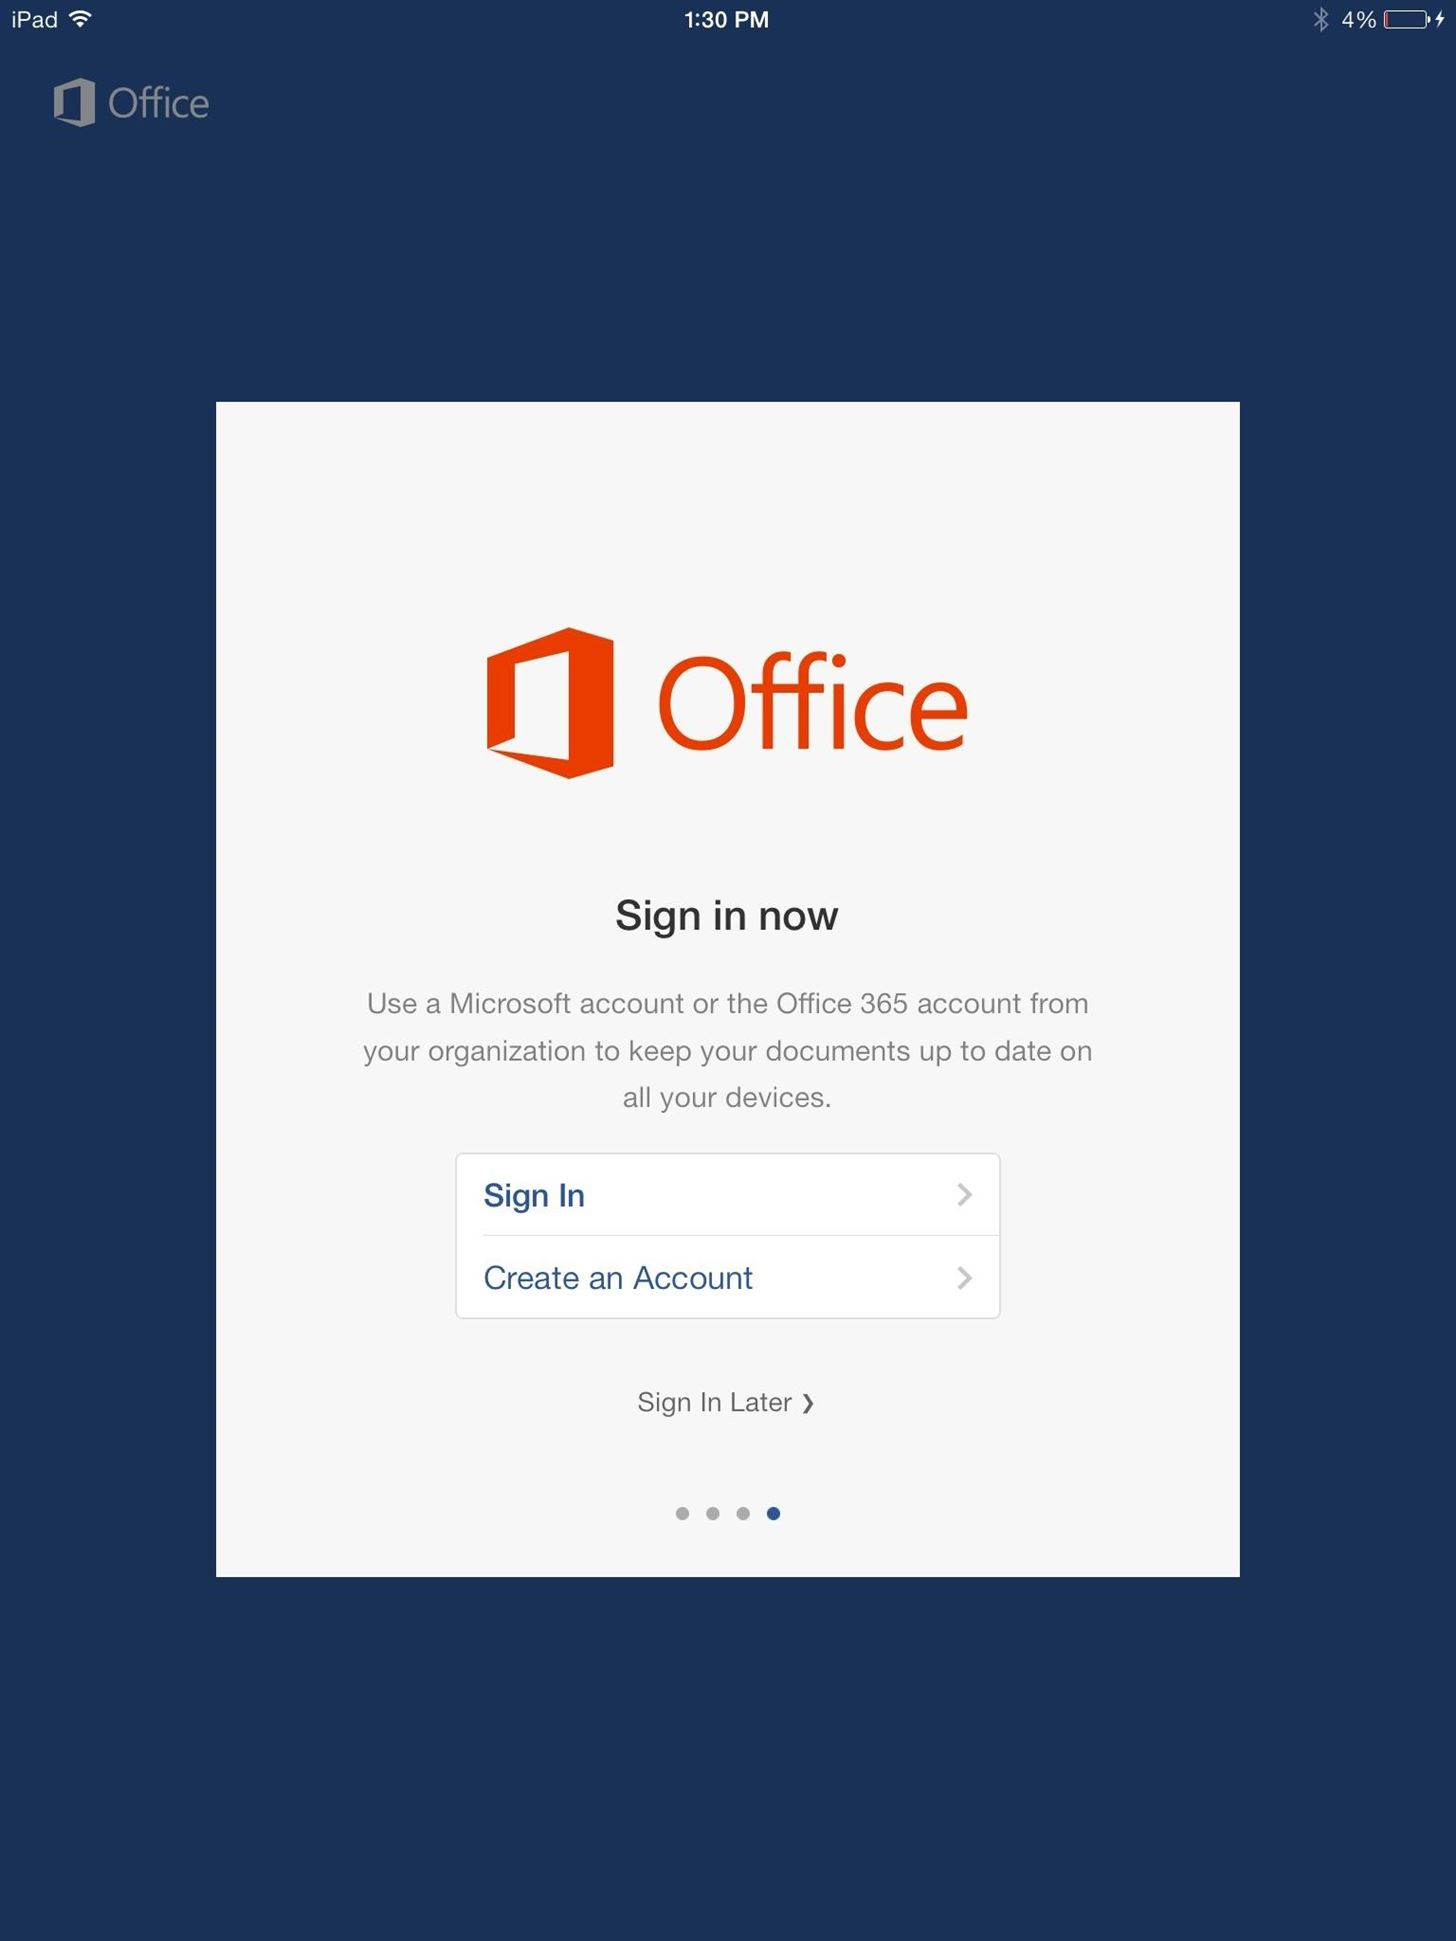 Microsoft Office Suite Apps Come to the iPad—But Are They Worth Your Download?